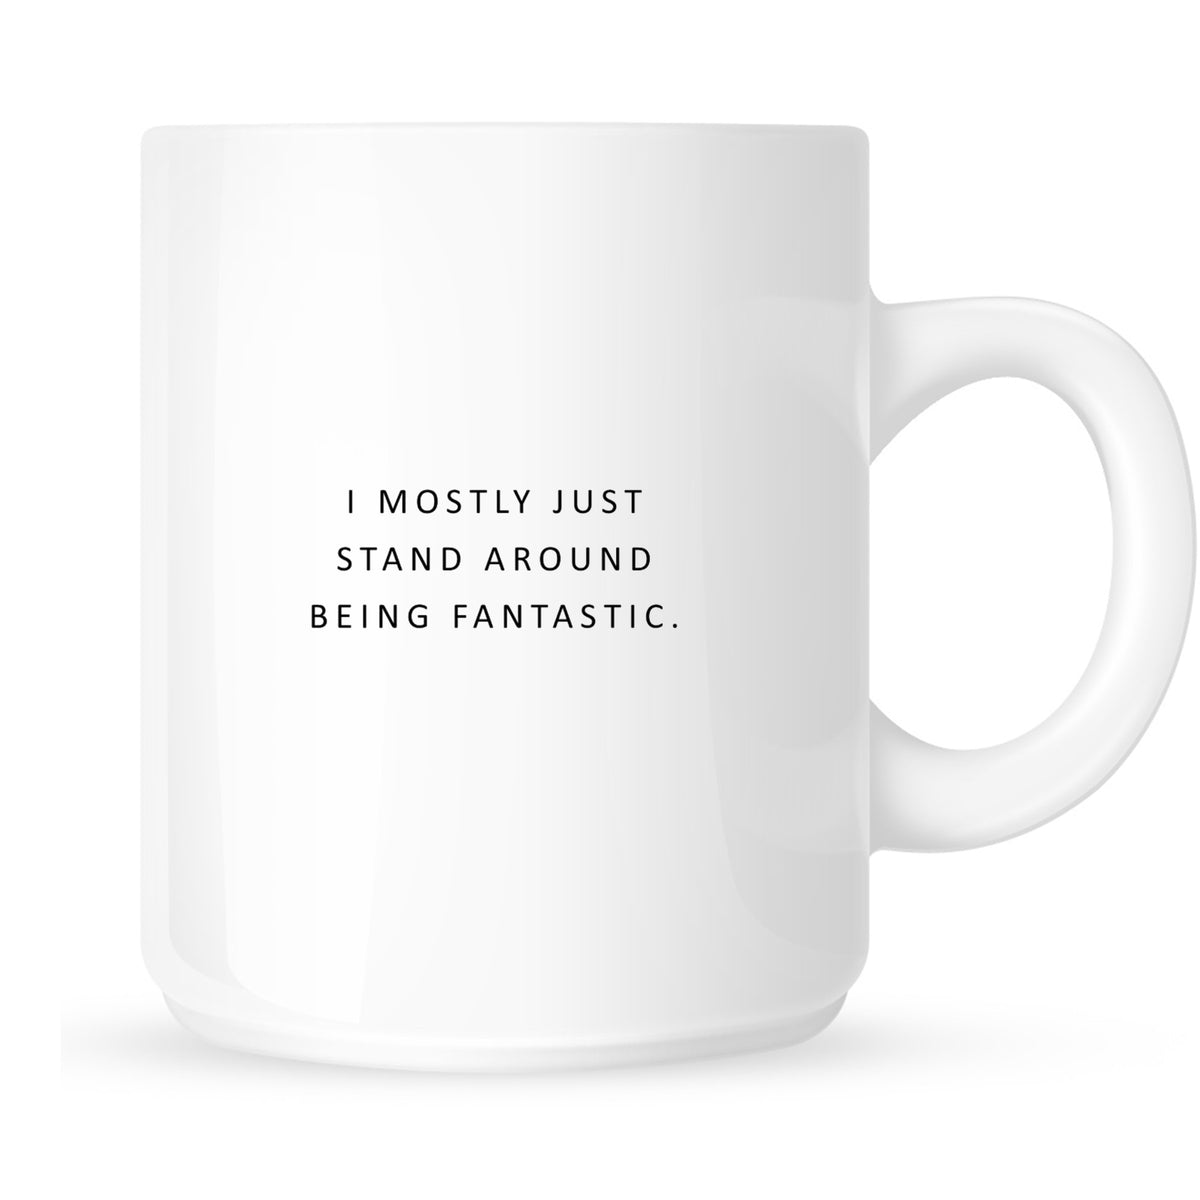 Mug - I Mostly Just Stand Around Being Fantastic